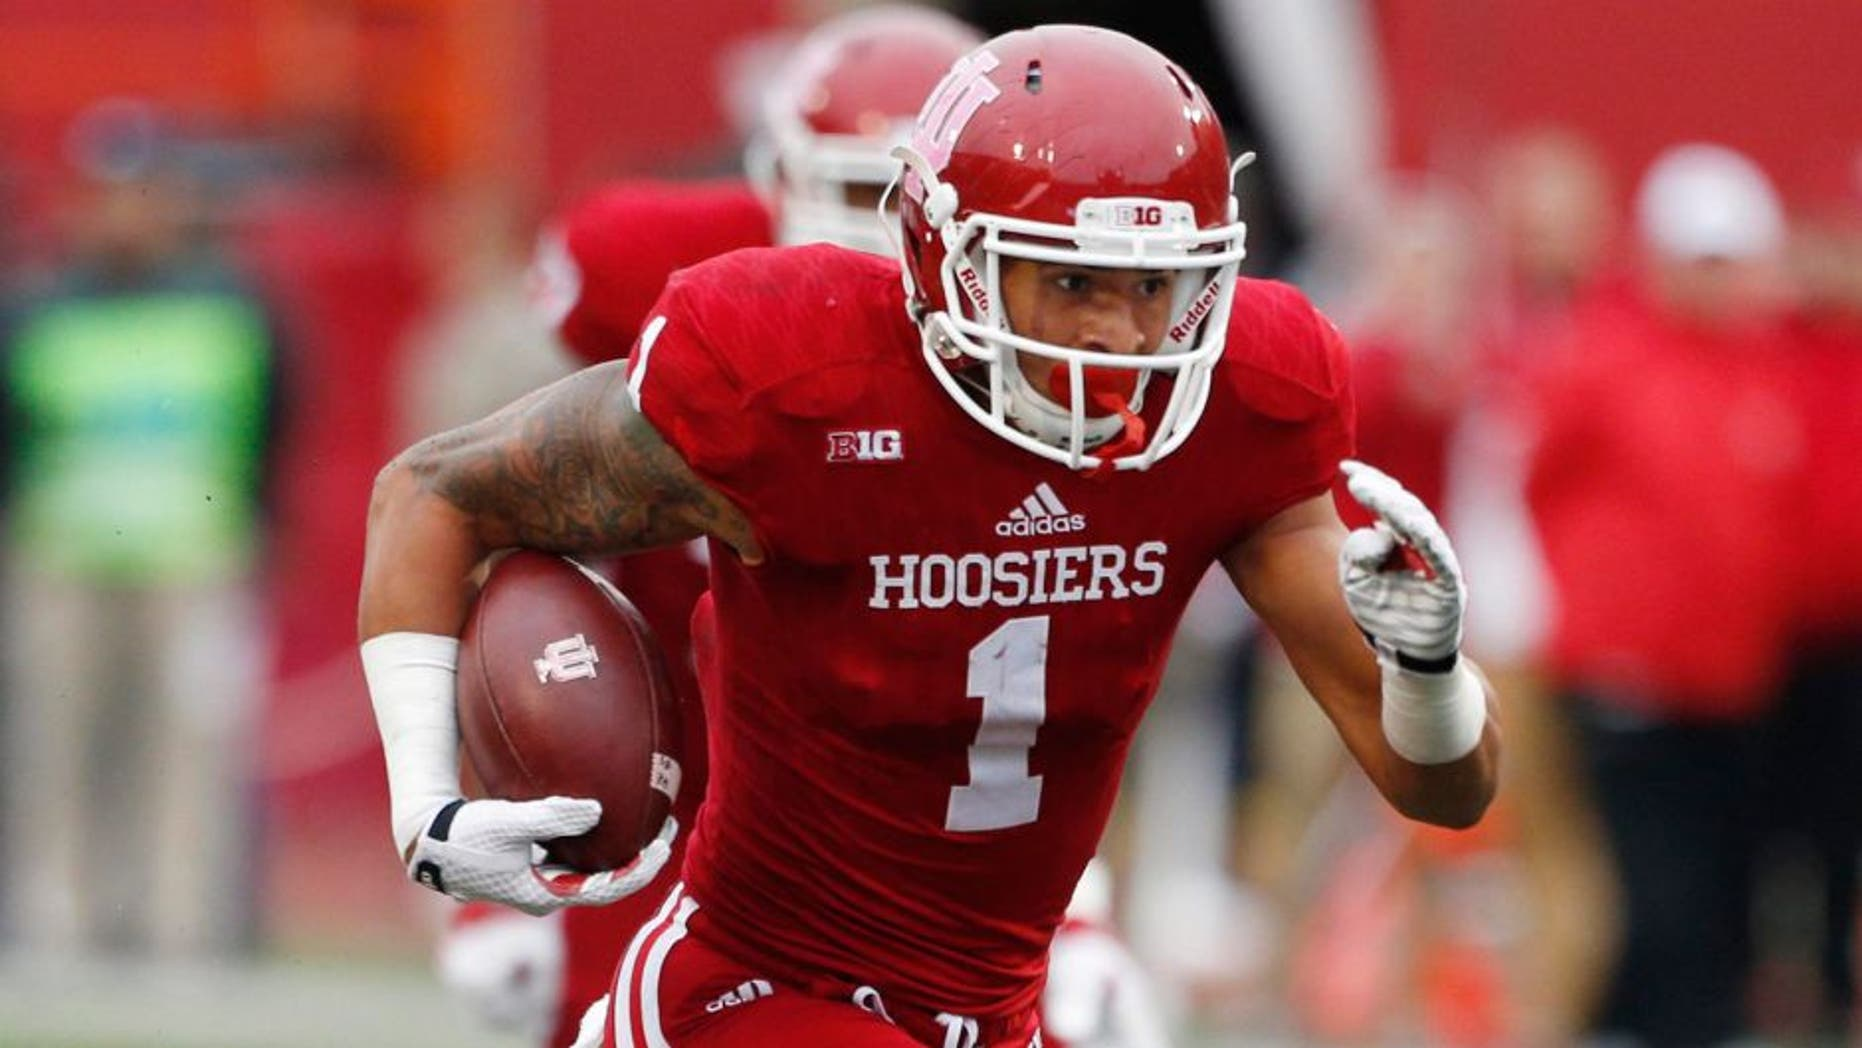 Oct 3, 2015; Bloomington, IN, USA; Indiana Hoosiers wide receiver Simmie Cobbs Jr. (1) runs with the ball after making a catch against the Ohio State Buckeyes at Memorial Stadium. Ohio State defeats Indiana 34-27. Mandatory Credit: Brian Spurlock-USA TODAY Sports